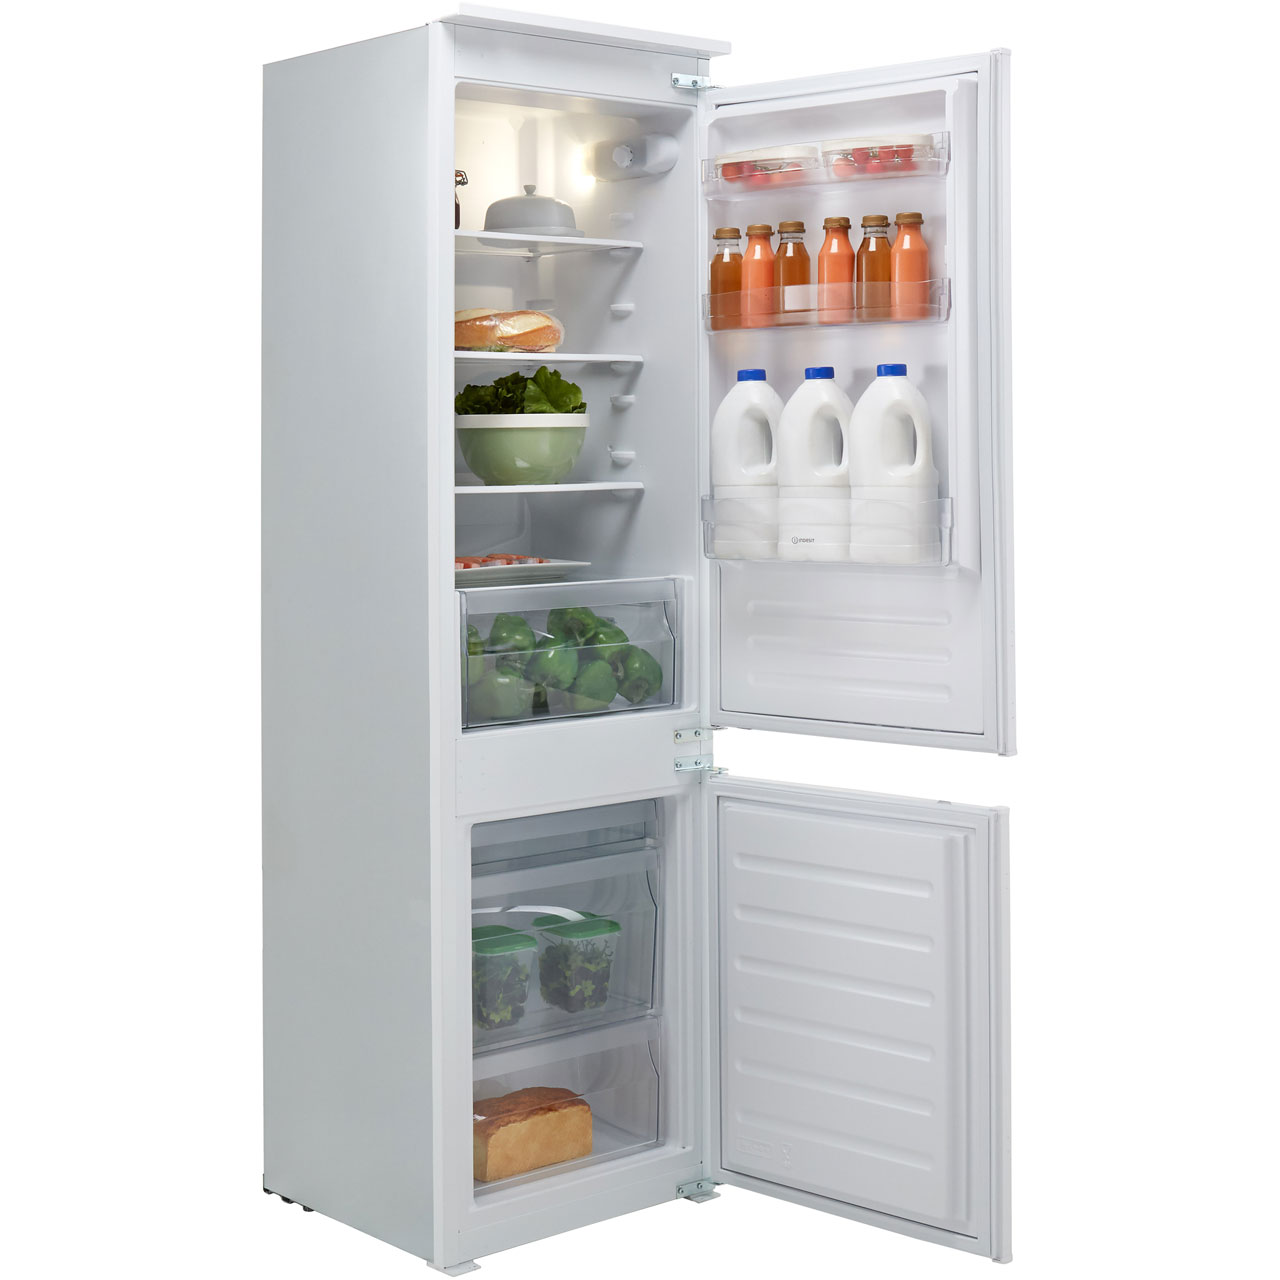 hight resolution of details about indesit ib7030a1d 1 a 54cm fridge freezer 70 30 standard built in white